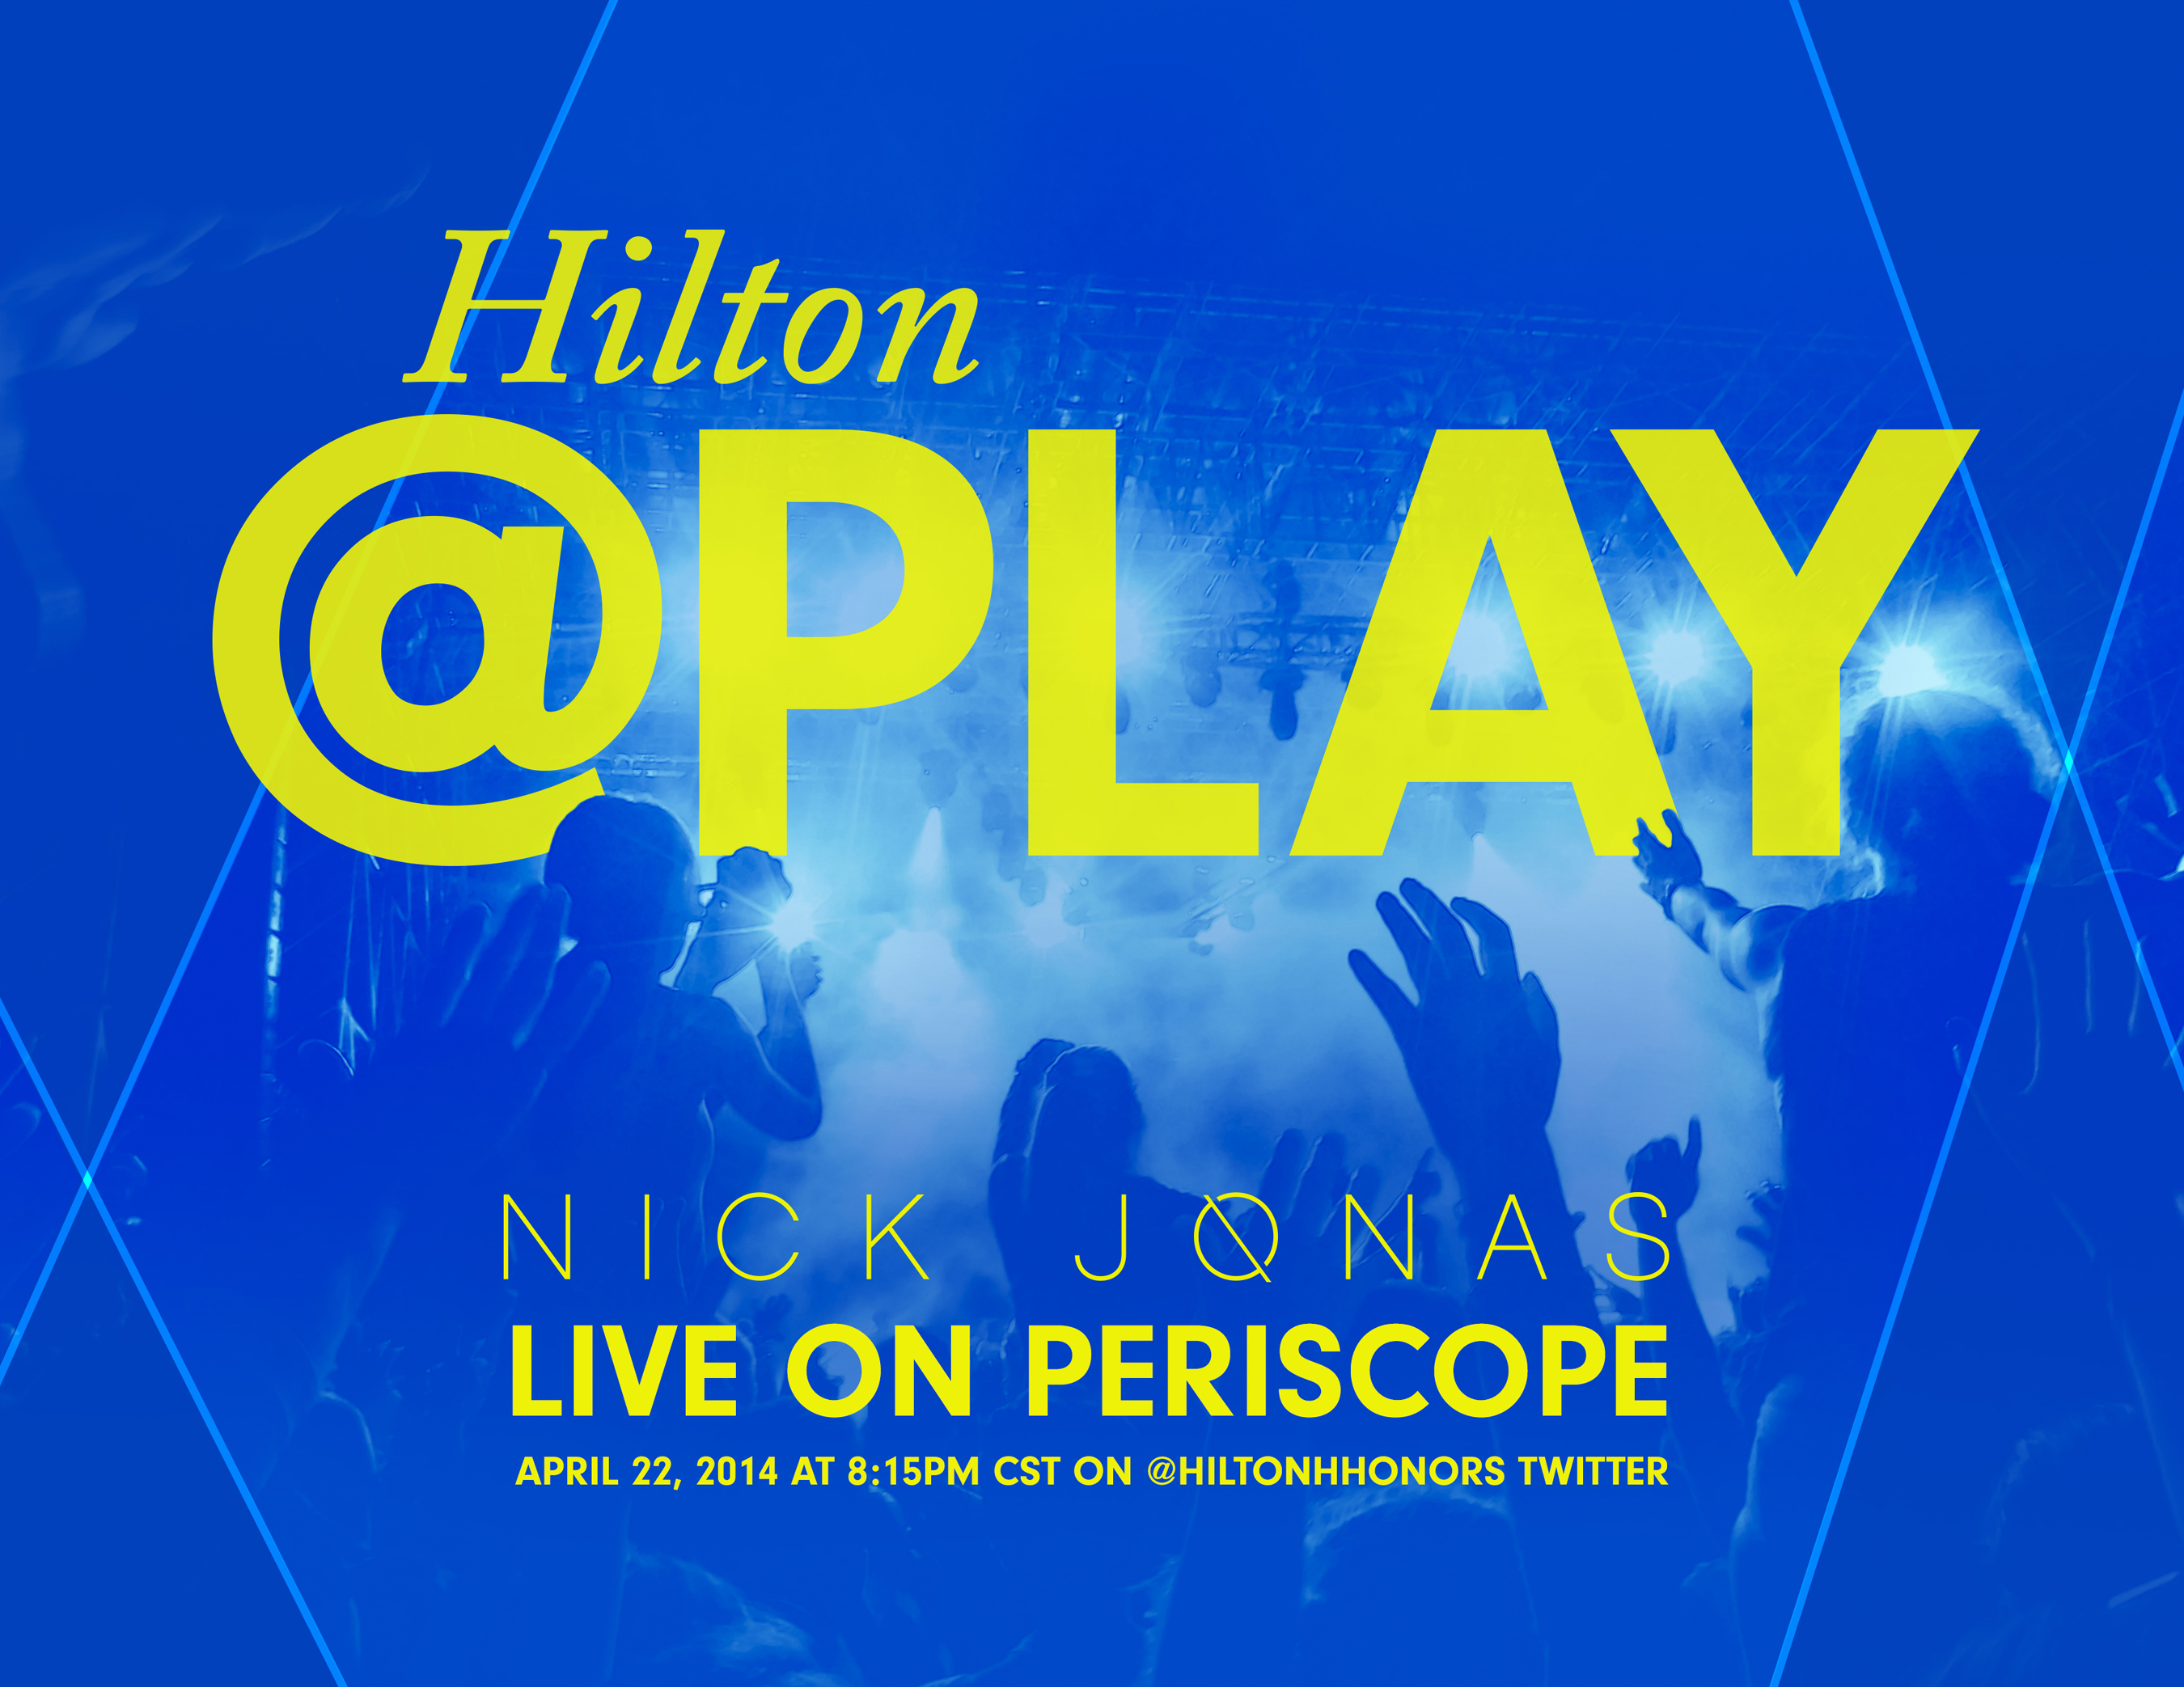 Periscope To Stream First Official Live Concert, Featuring Nick Jonas